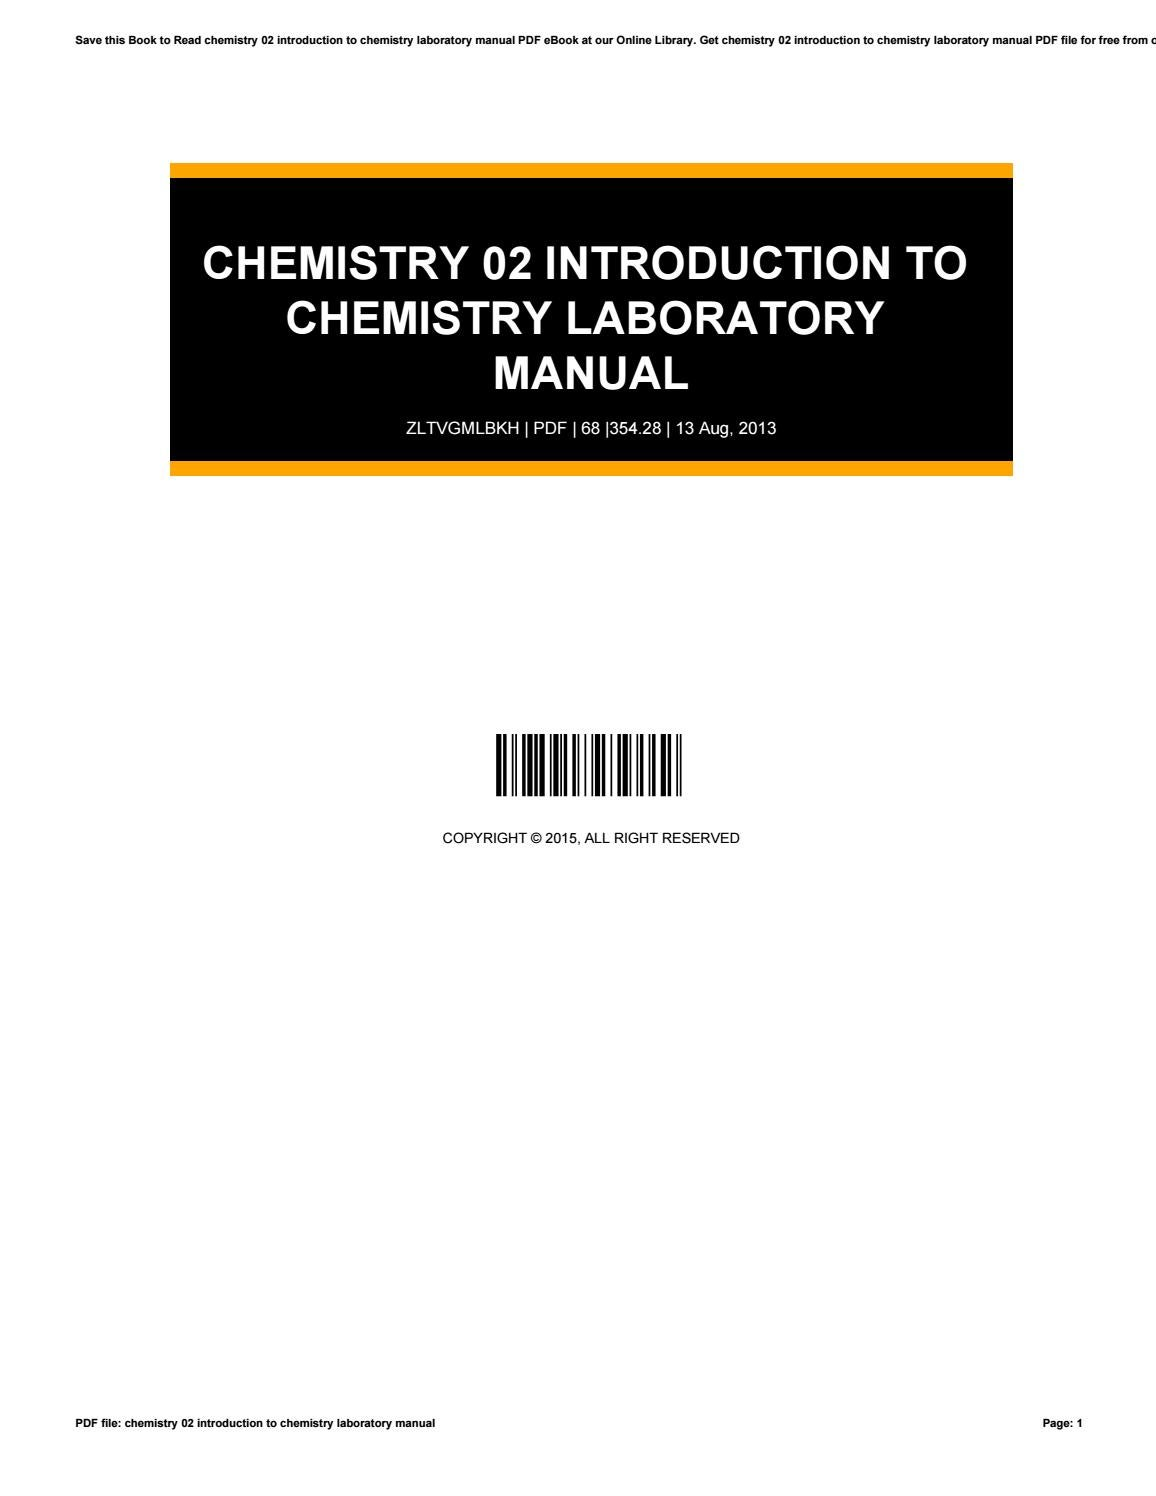 Chemistry 02 introduction to chemistry laboratory manual by